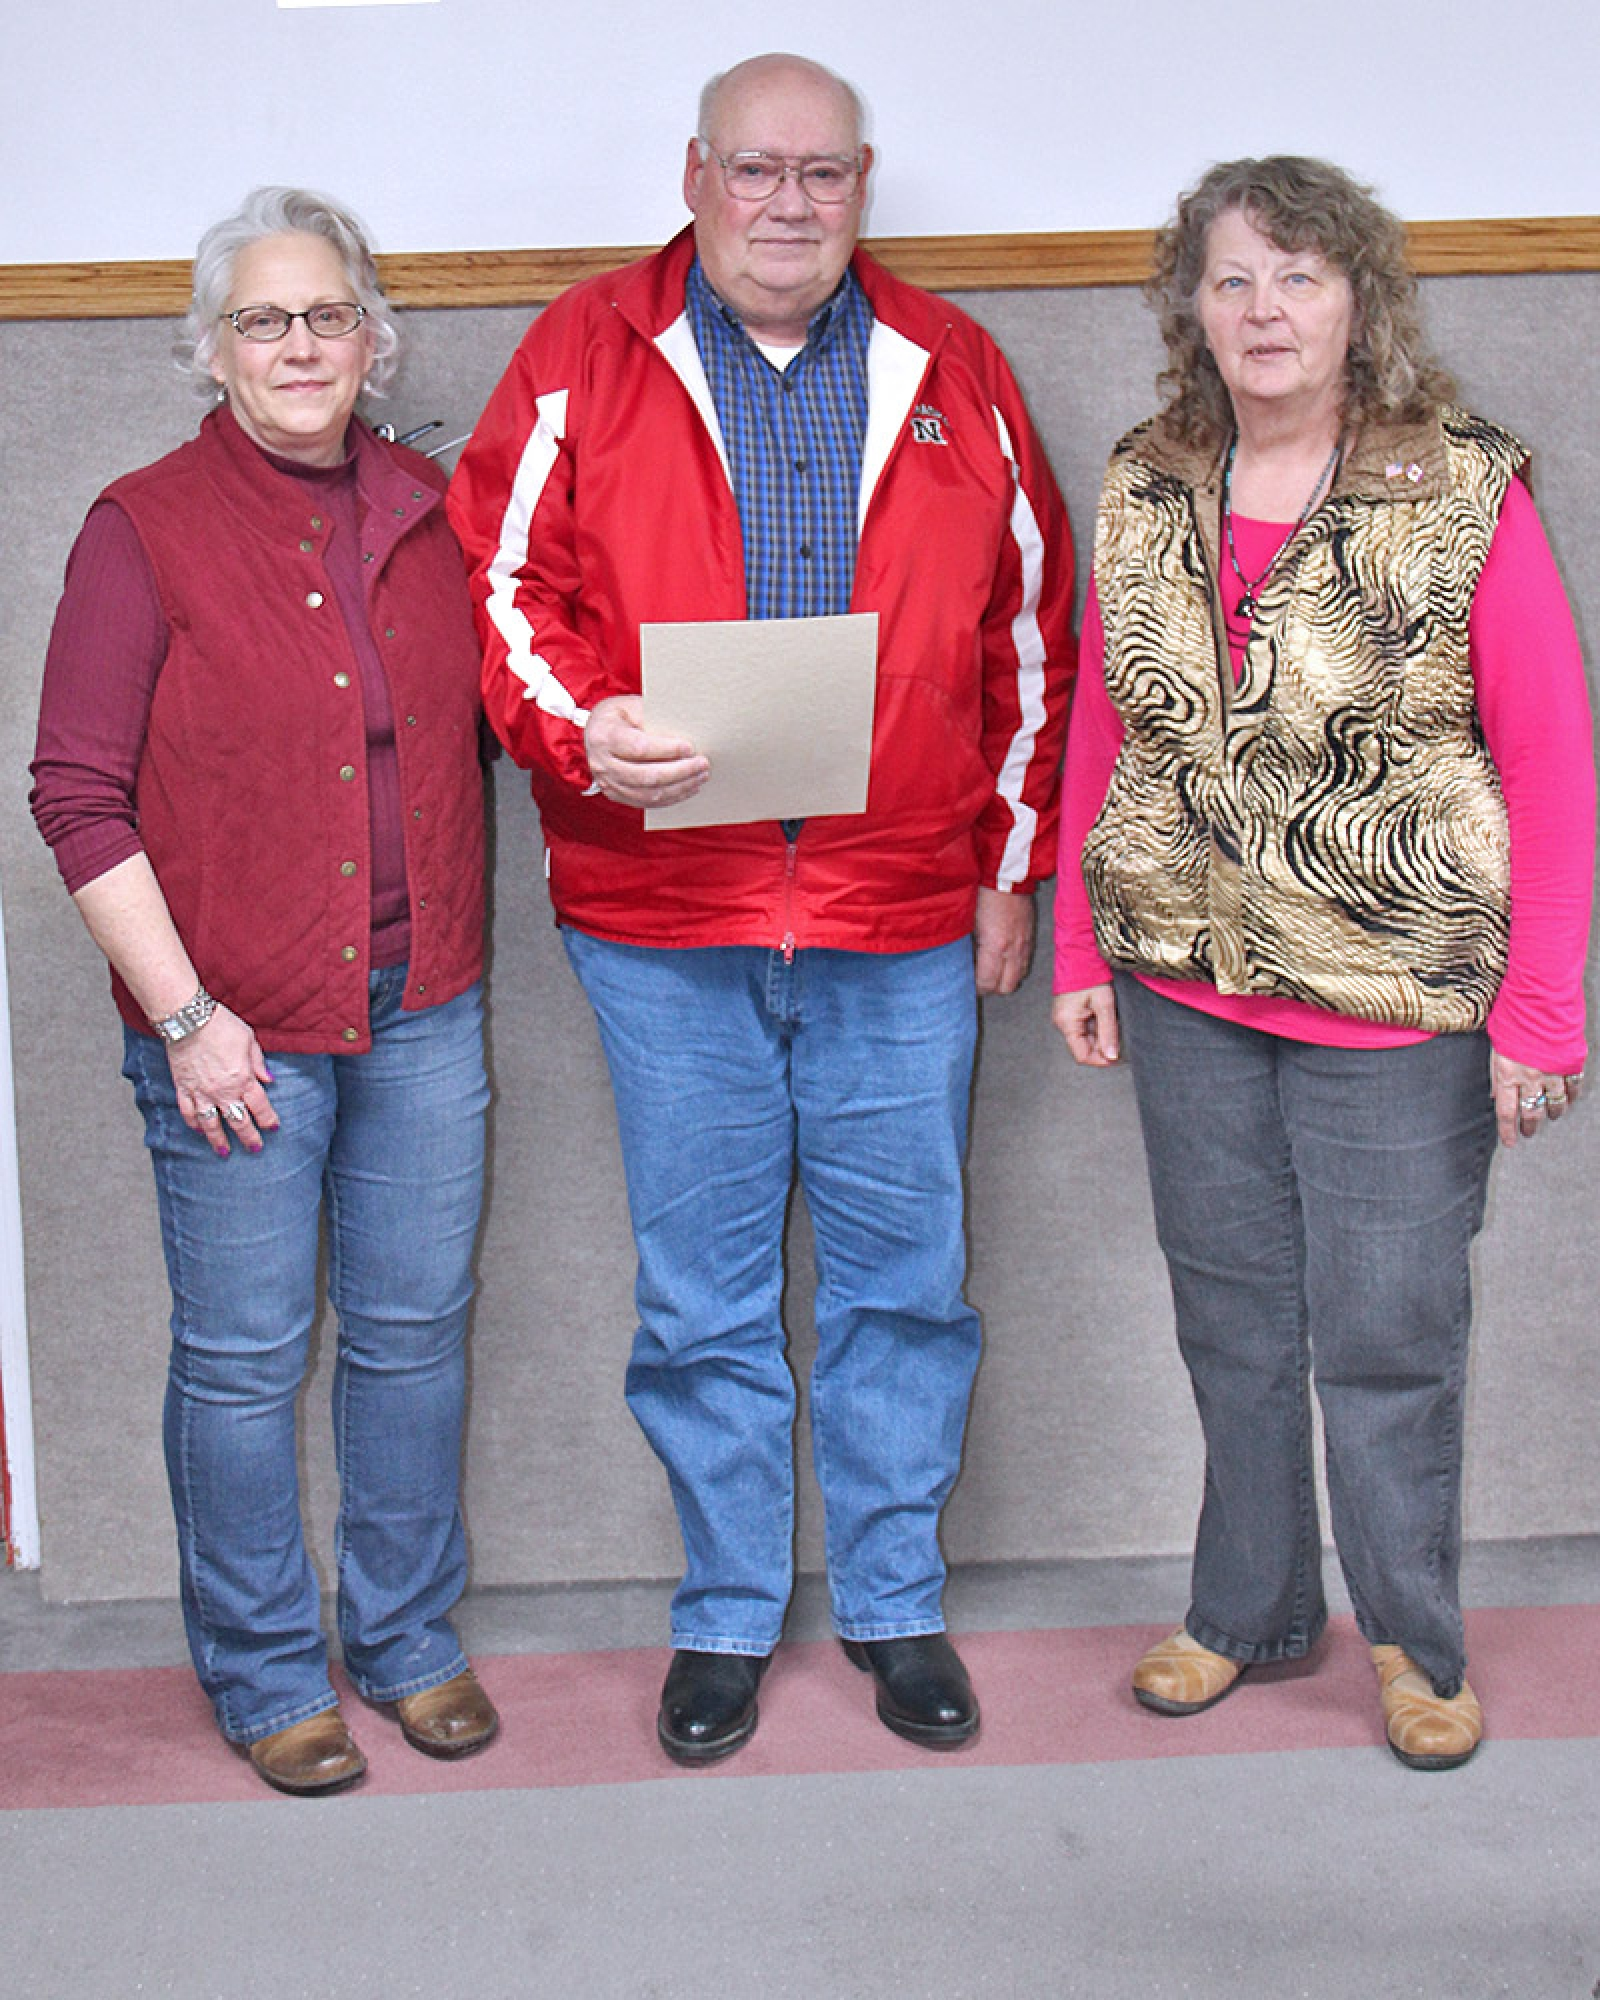 Winter honored for 44 years with City of Gordon, Edwards named next city manager